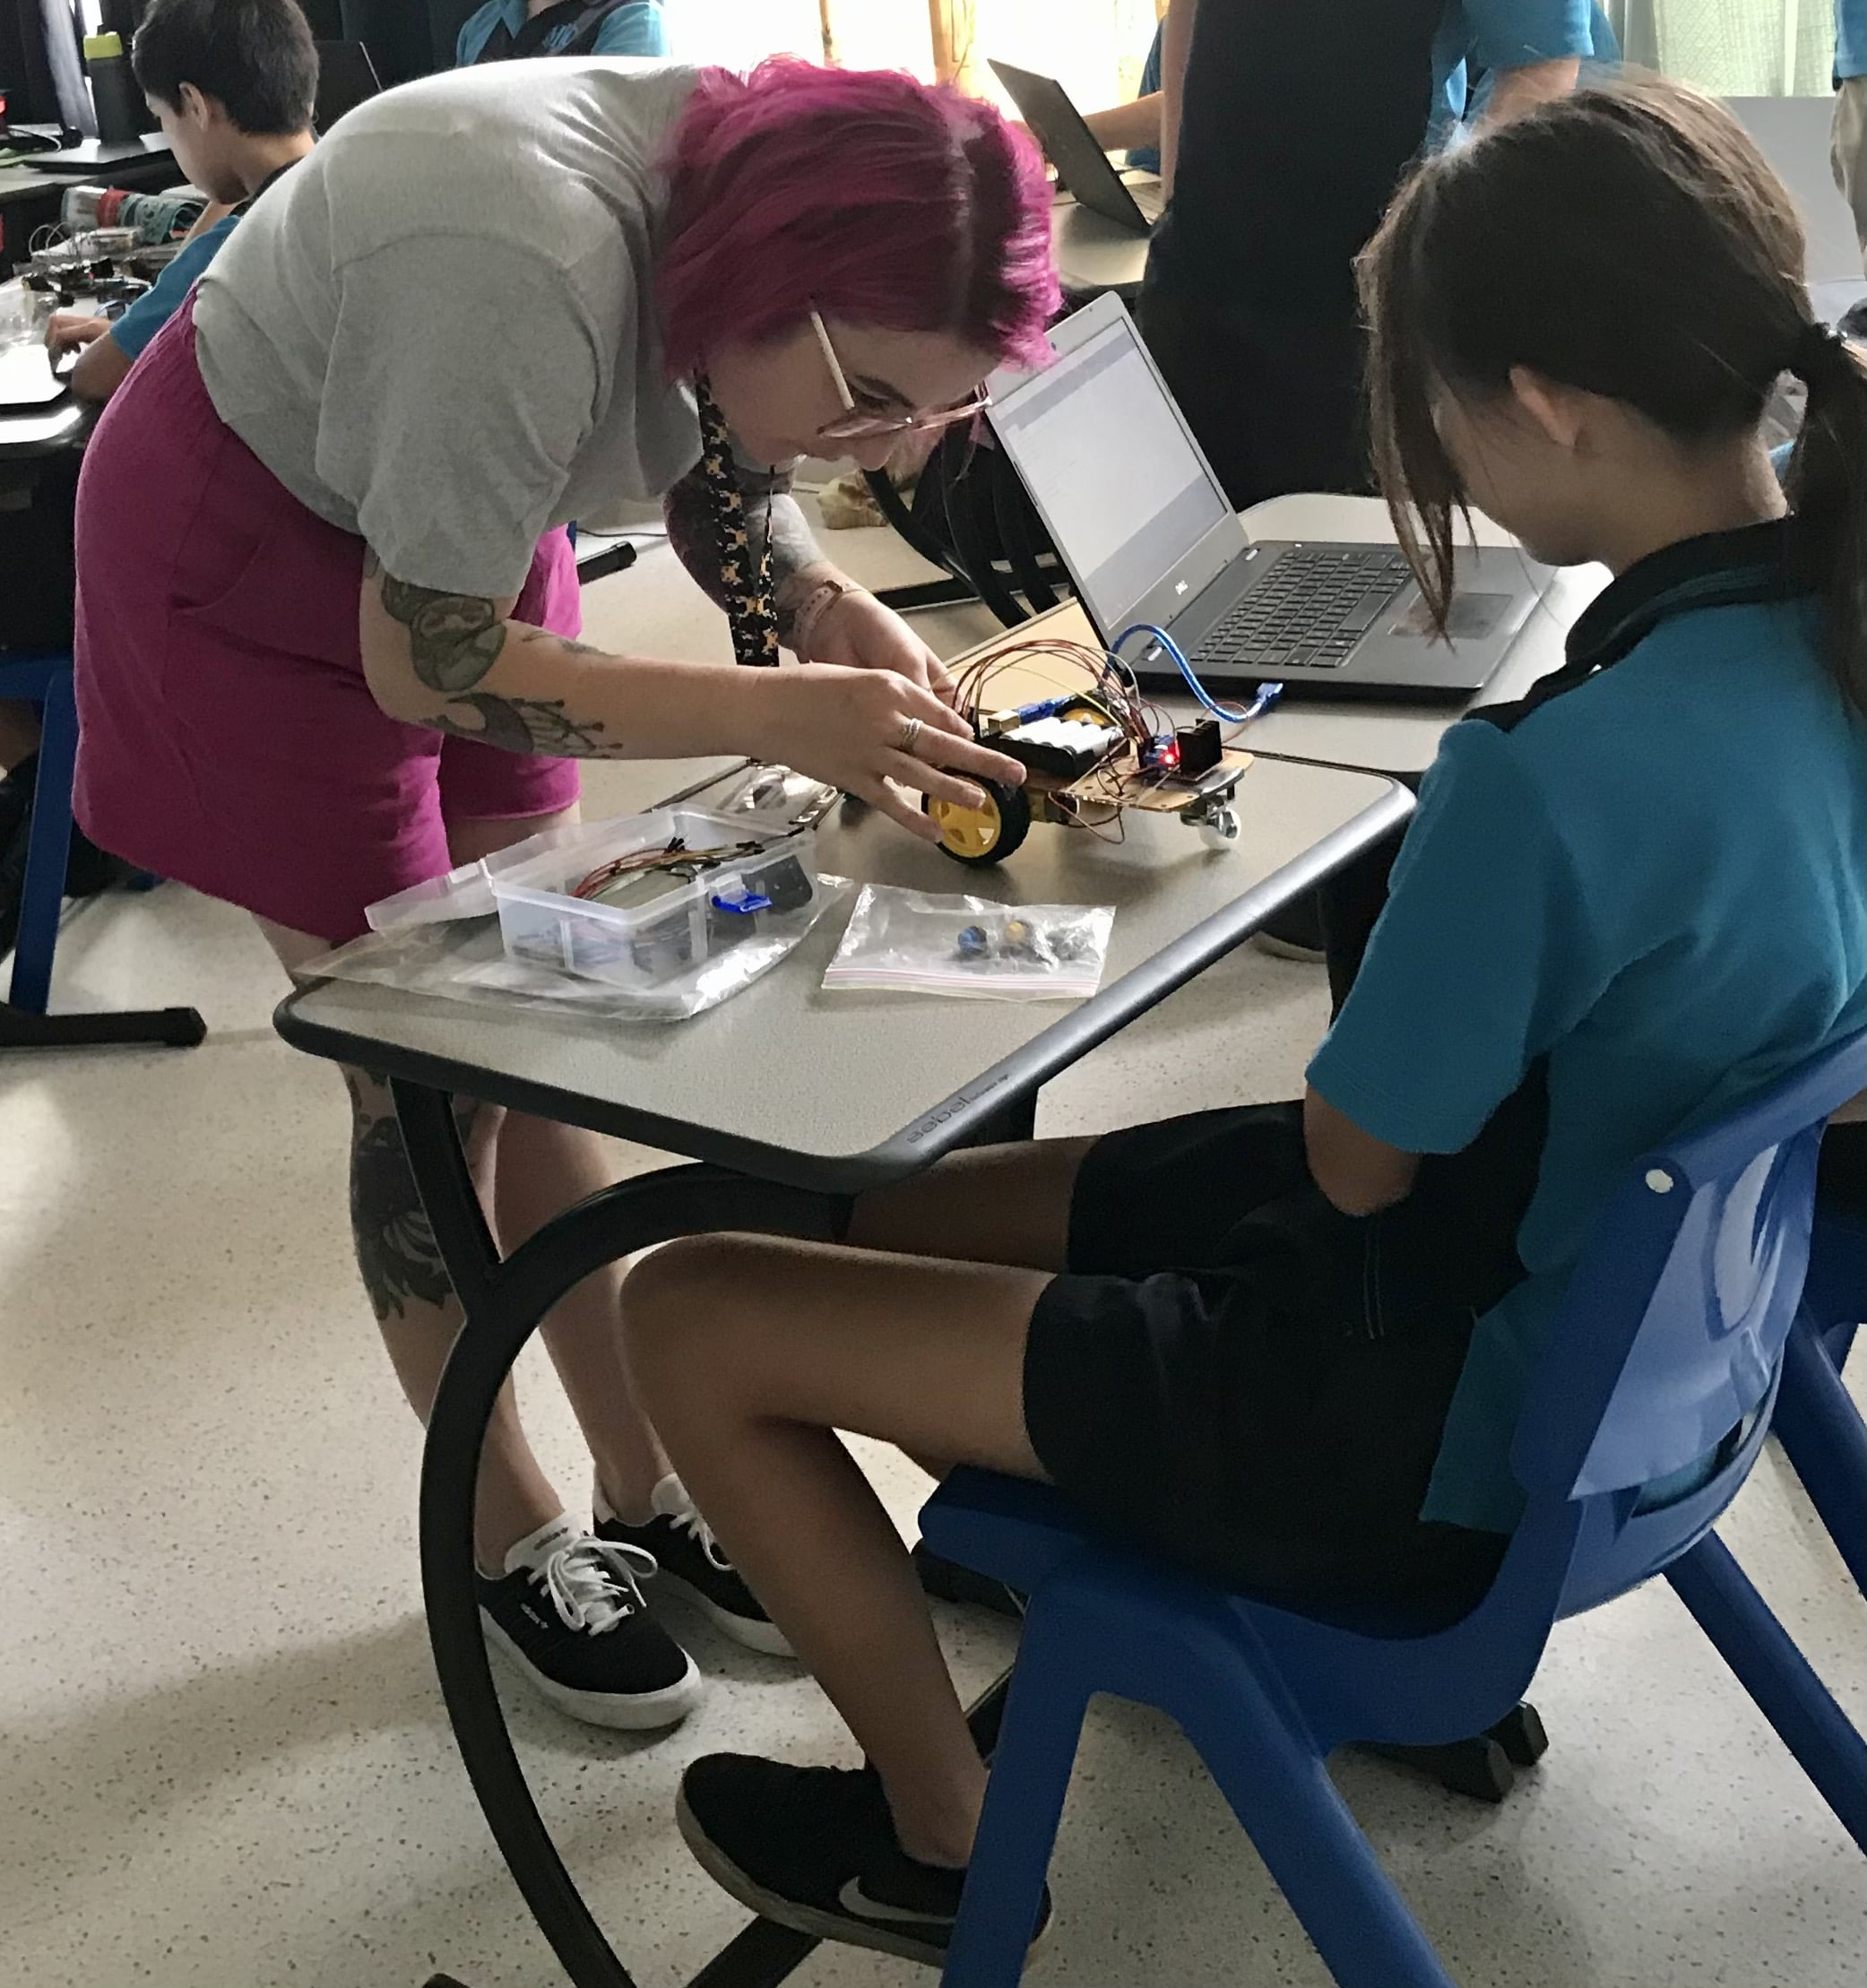 A pre-service teacher helps a student with their project - a small electronic car